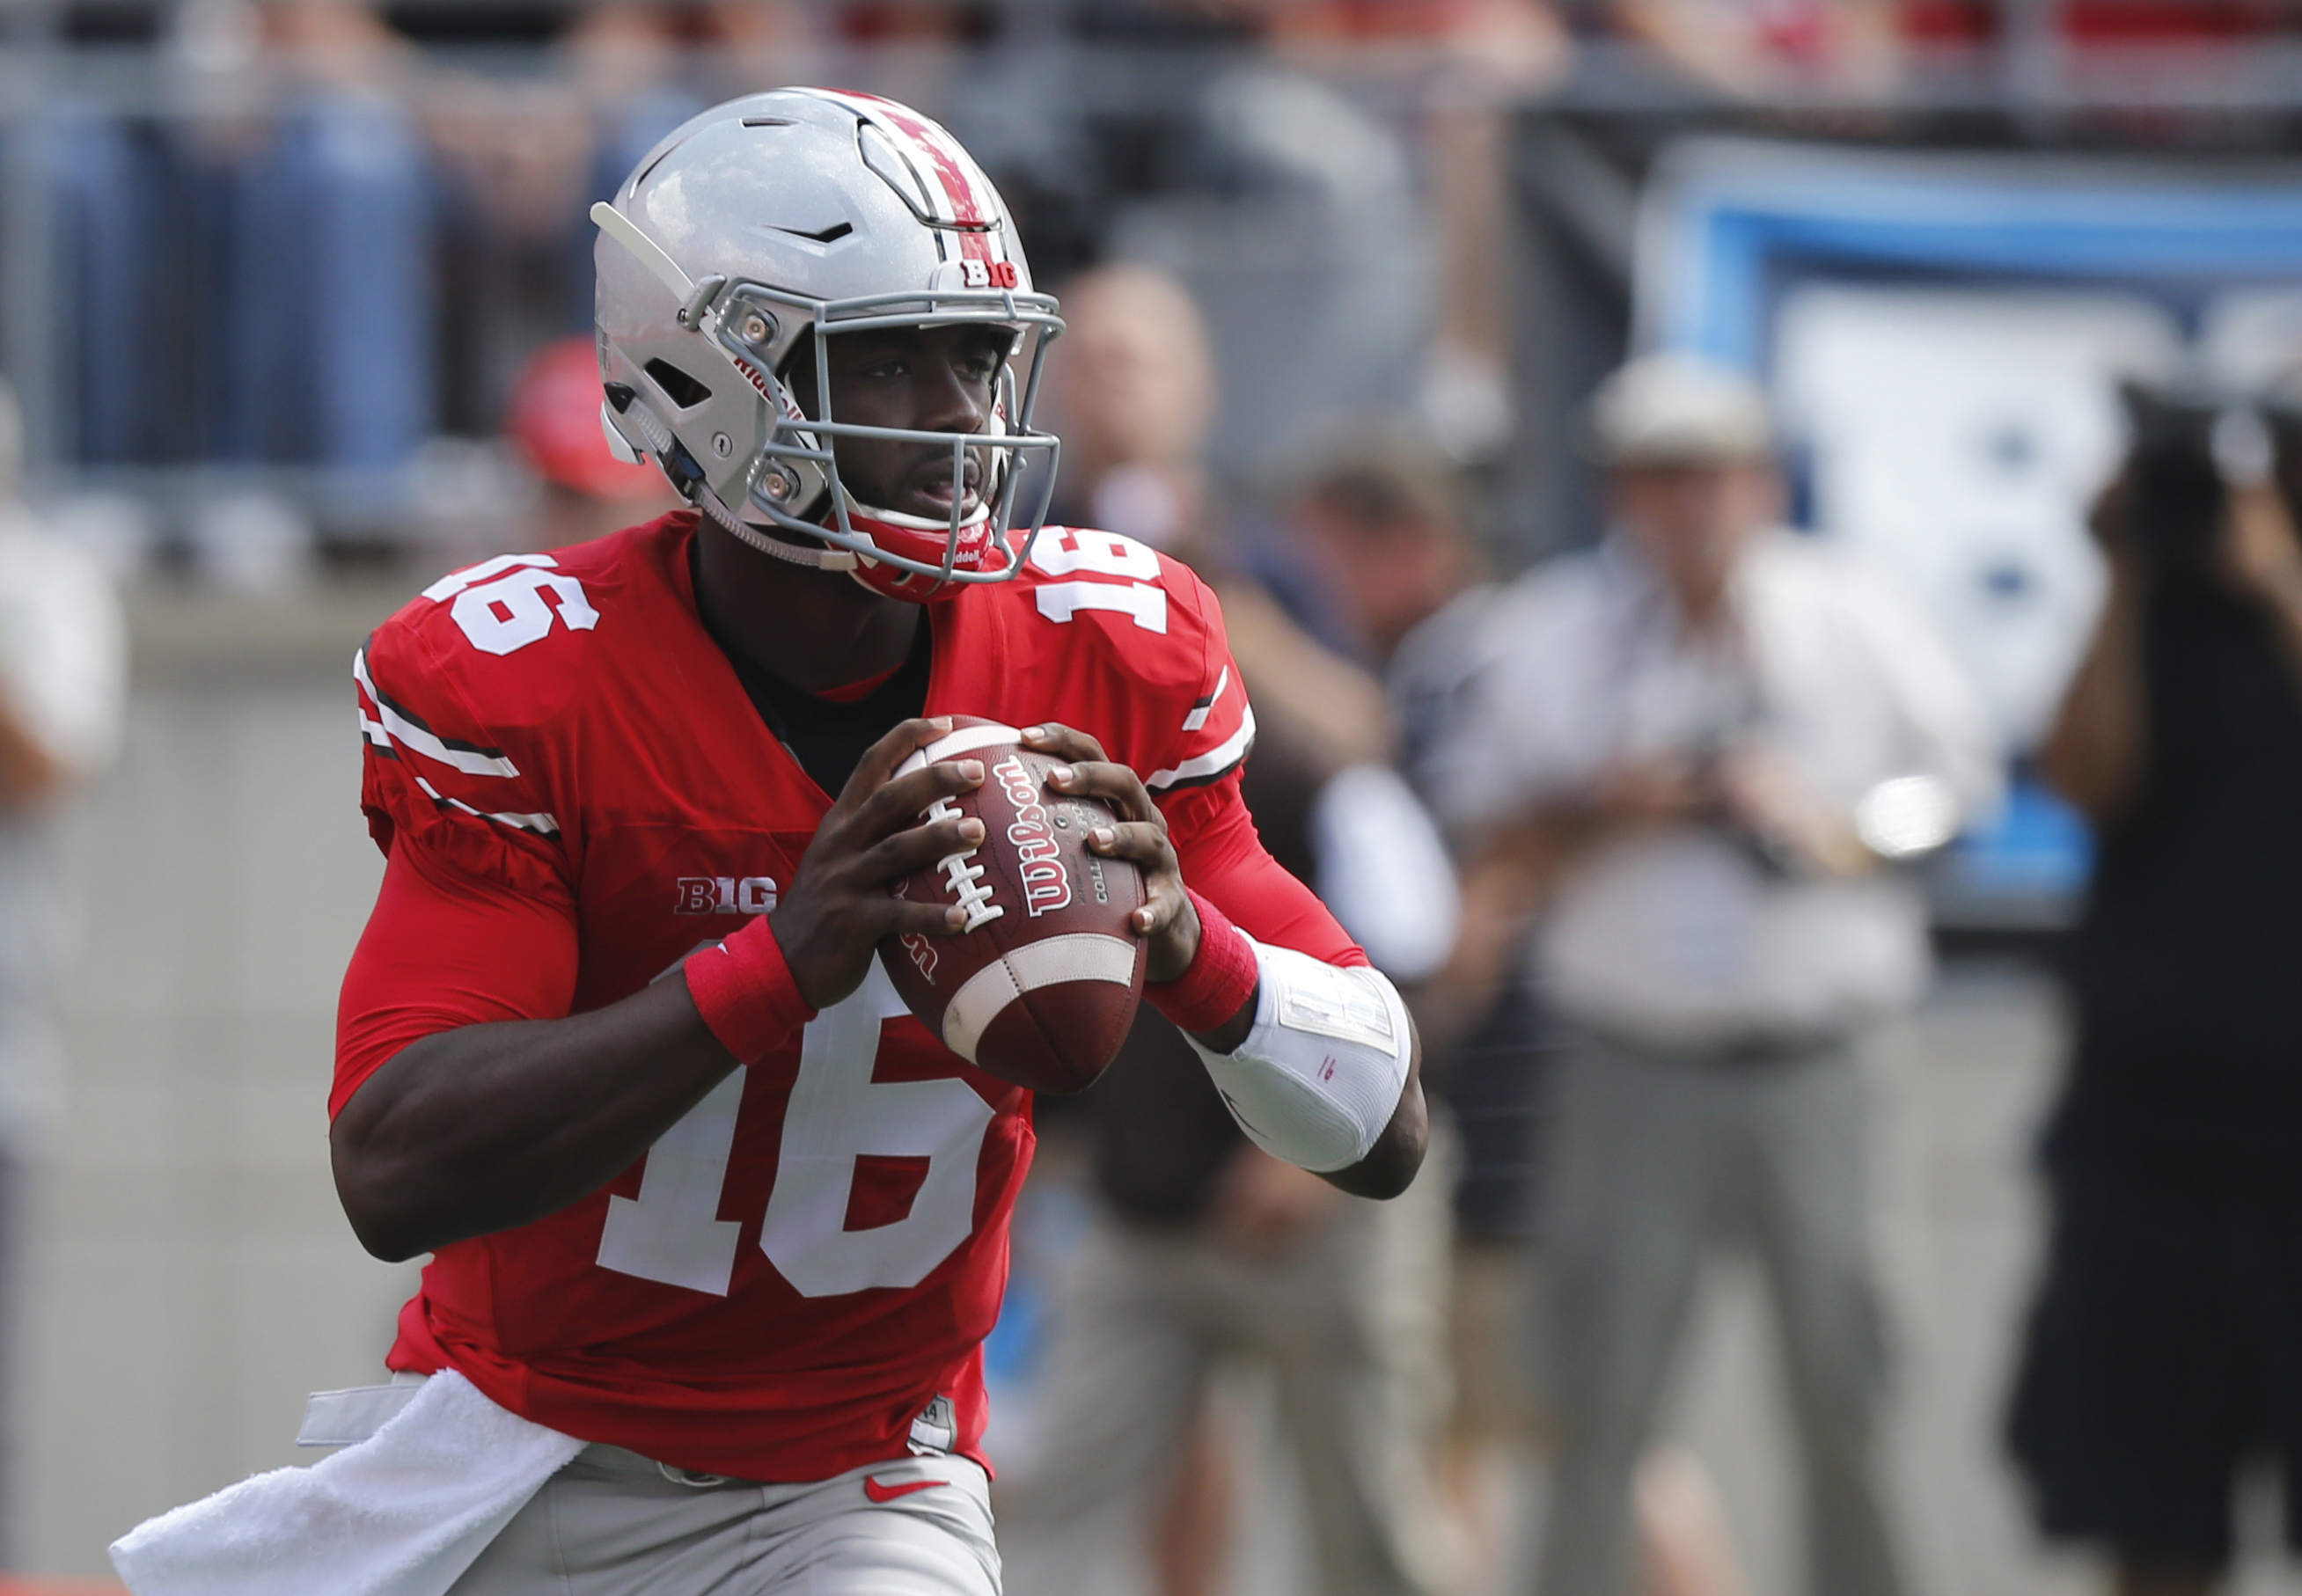 FILE - In this Sept. 3, 2016, file photo, Ohio State quarterback J.T. Barrett plays against Bowling Green during an NCAA college football game, in Columbus, Ohio. Maryland faces Ohio State on Saturday. The Terrapins have lost four of five, including a 59-